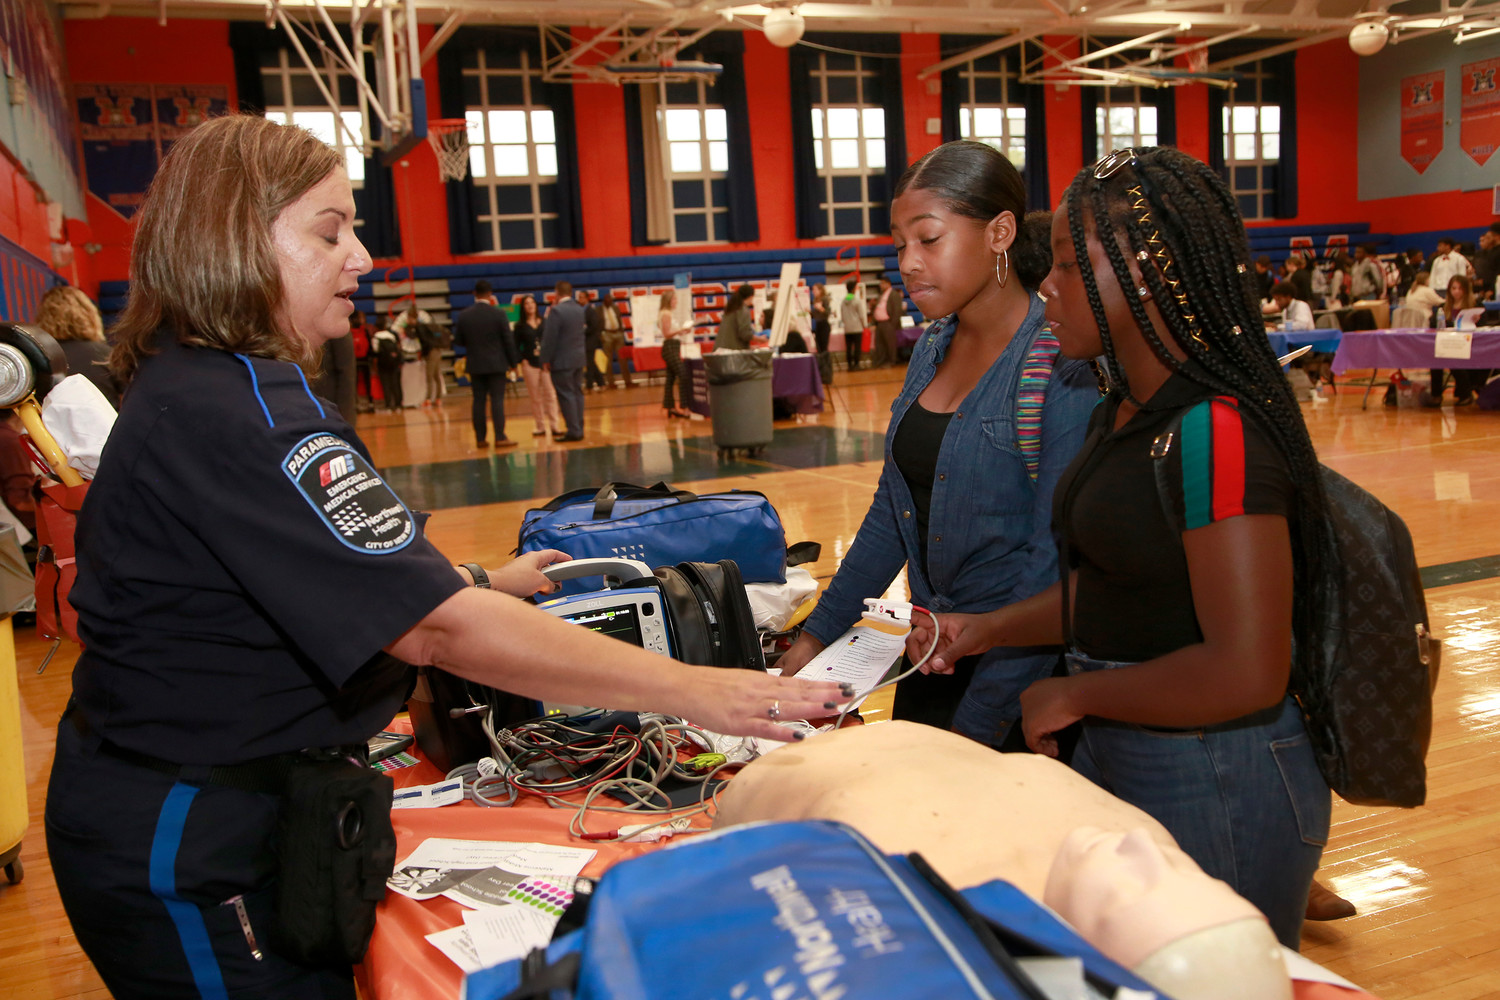 Freshmen Aniyah Smith, center, and Jazmyne Ackies learned some of the basics of CPR with an EMS worker from Northwell Health.